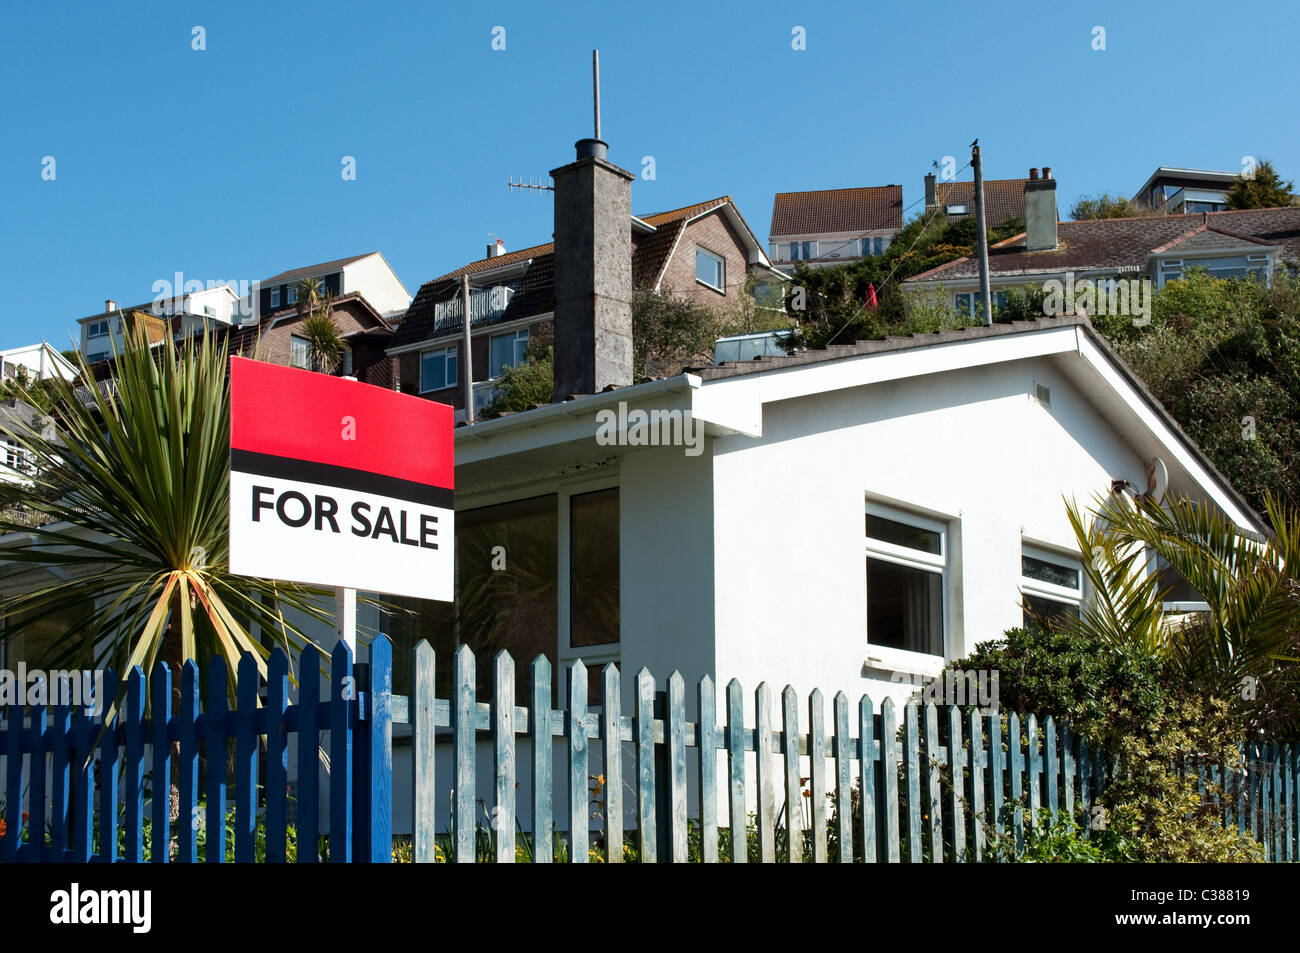 A house for sale in Downderry, Cornwal, UK - Stock Image